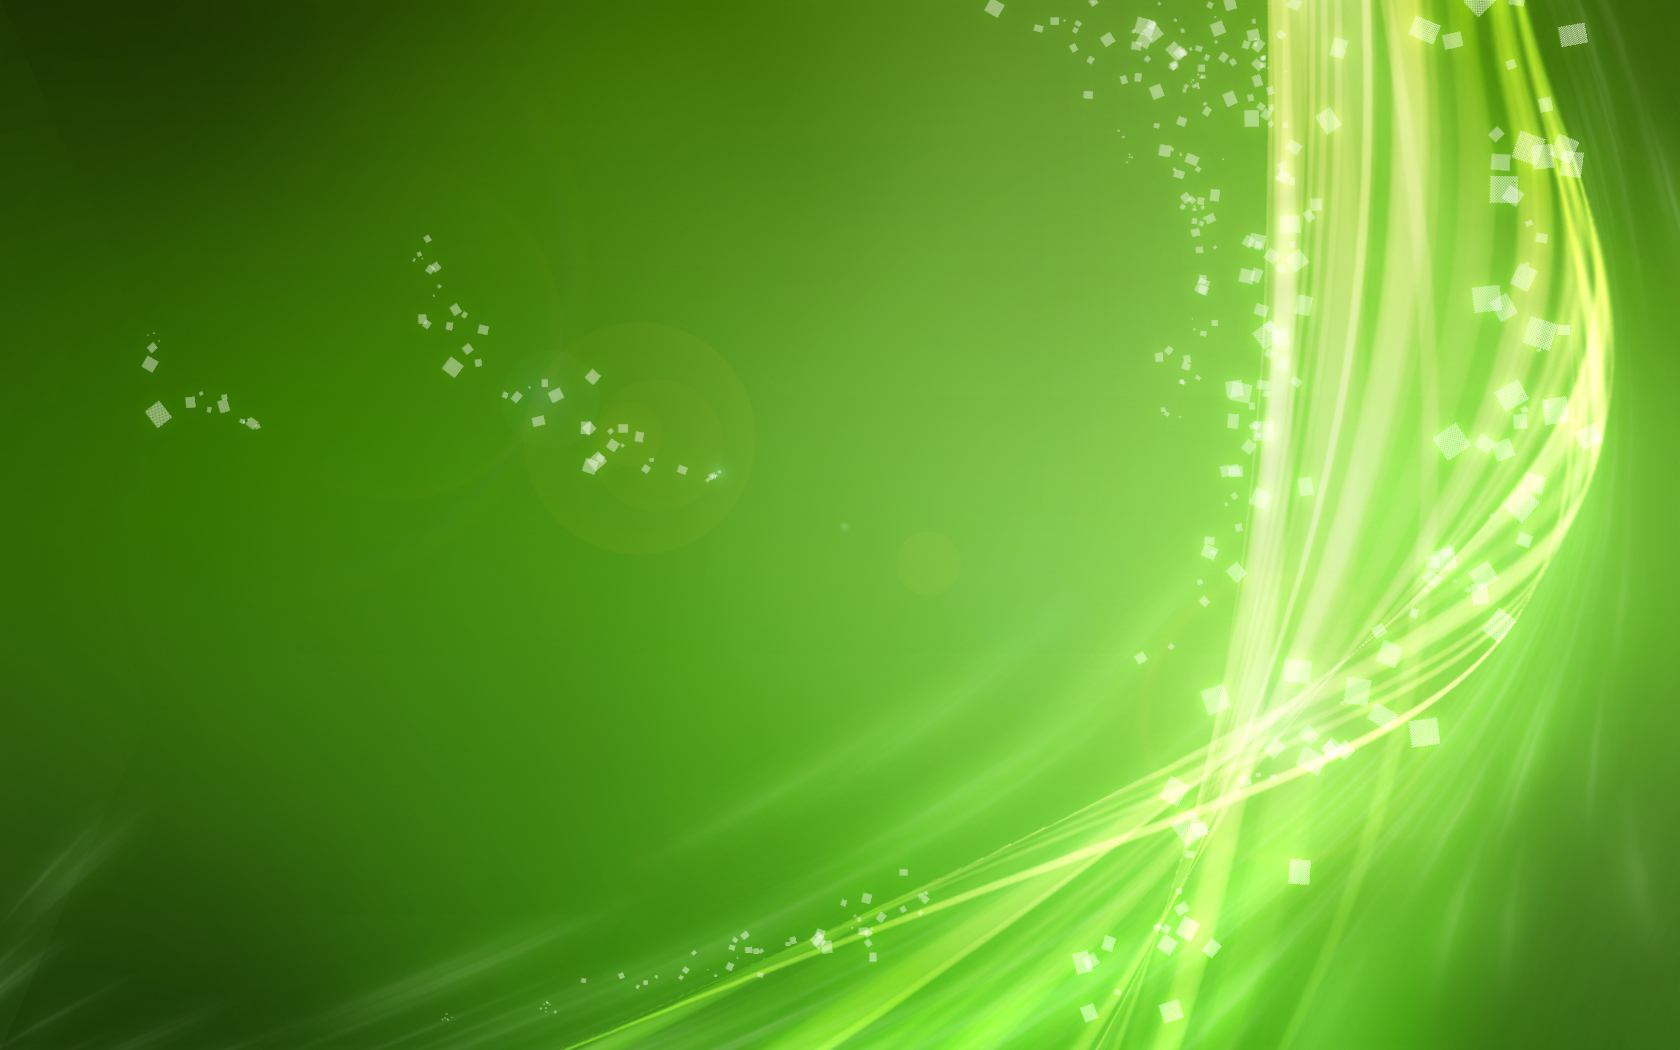 Collection of Green Images on HDWallpapers 1680x1050